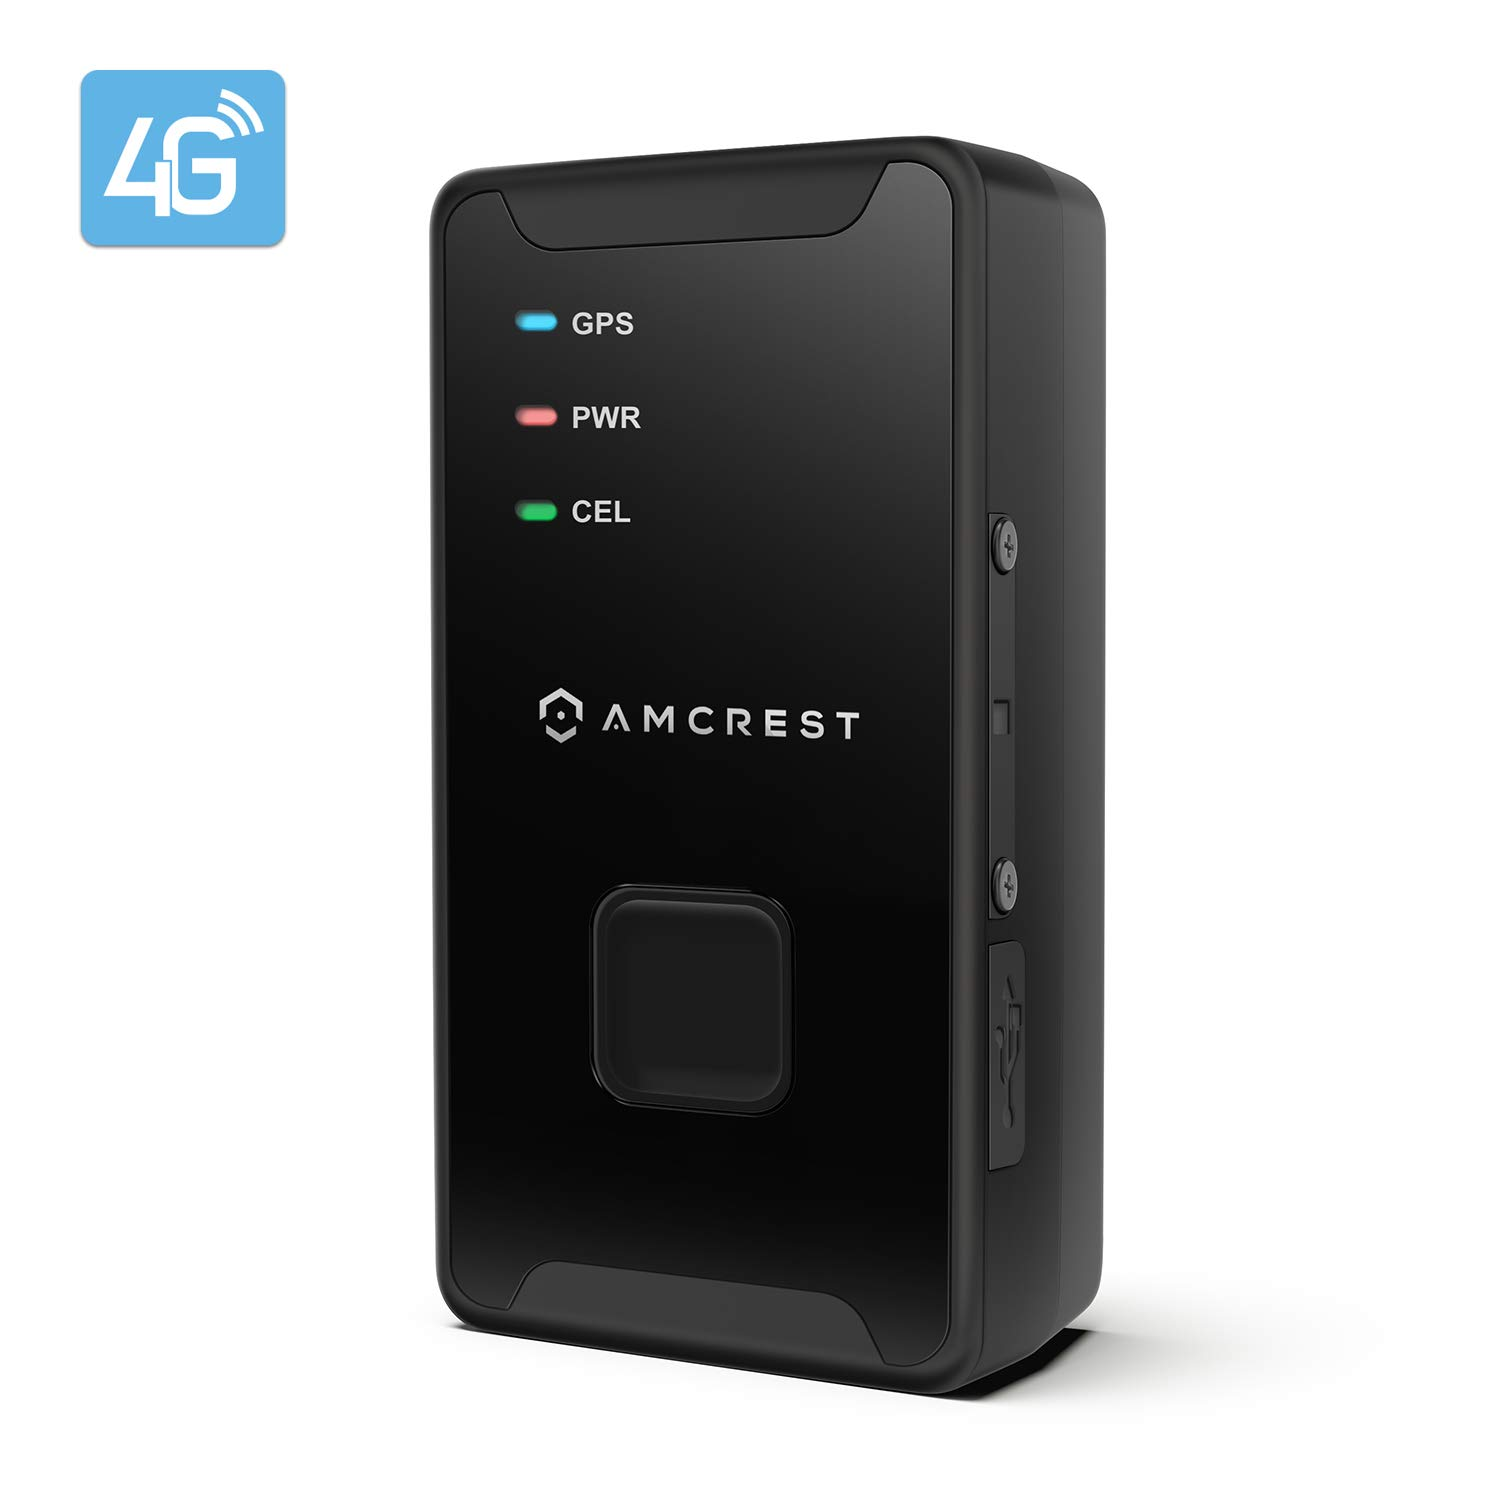 Amcrest 4G LTE GPS Tracker - Portable Mini Hidden Real-Time GPS Tracking Device for Vehicles, Cars, Kids, Persons, Assets w/Geo-Fencing, Text/Email/Push Alerts, 14 Day Battery, Global, No Contract